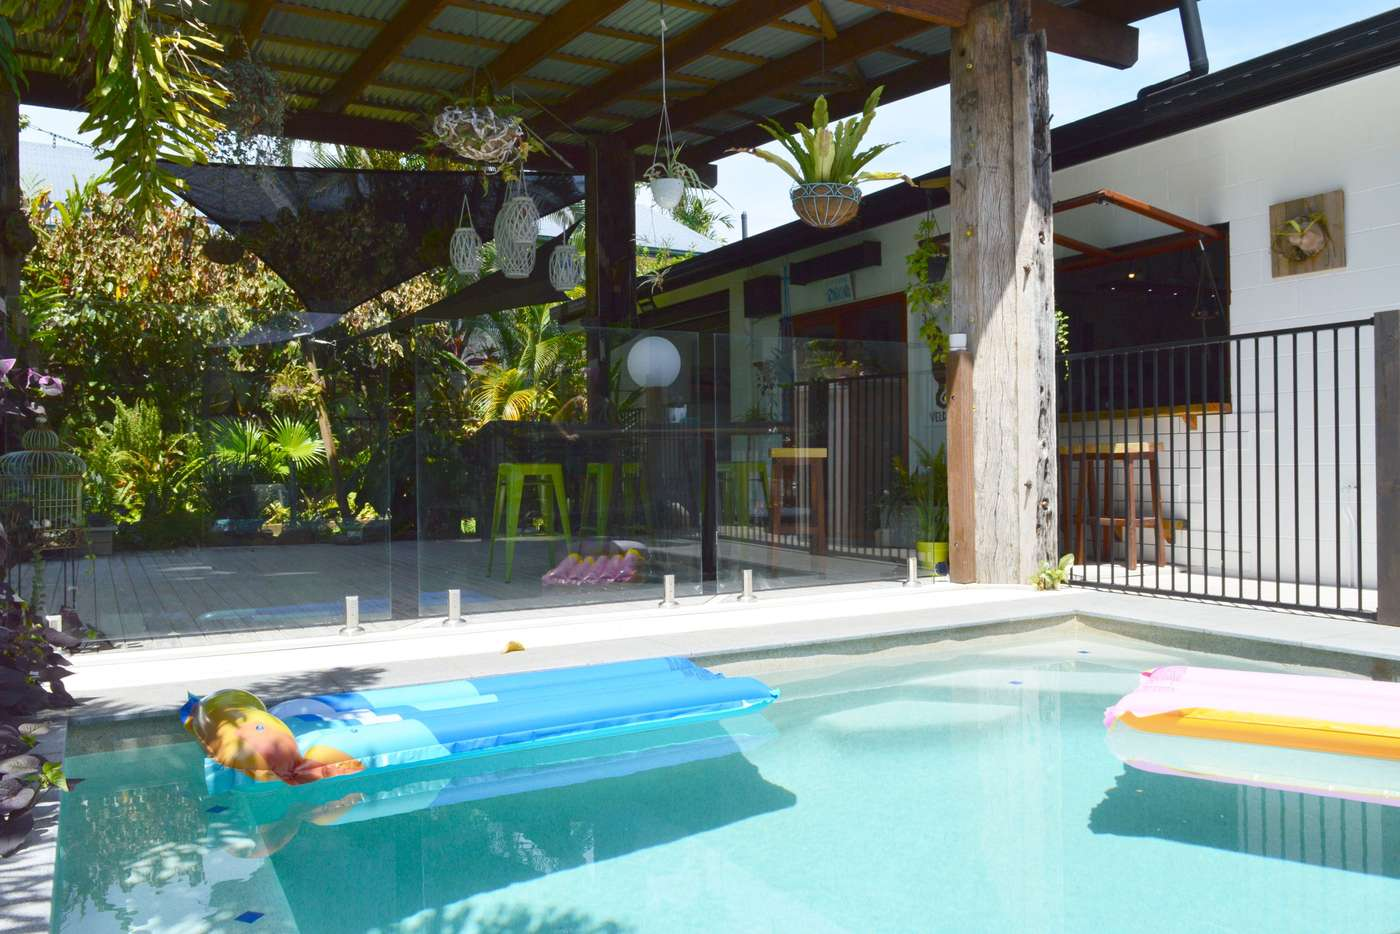 Main view of Homely house listing, 4 Timana Terrace, Wongaling Beach QLD 4852